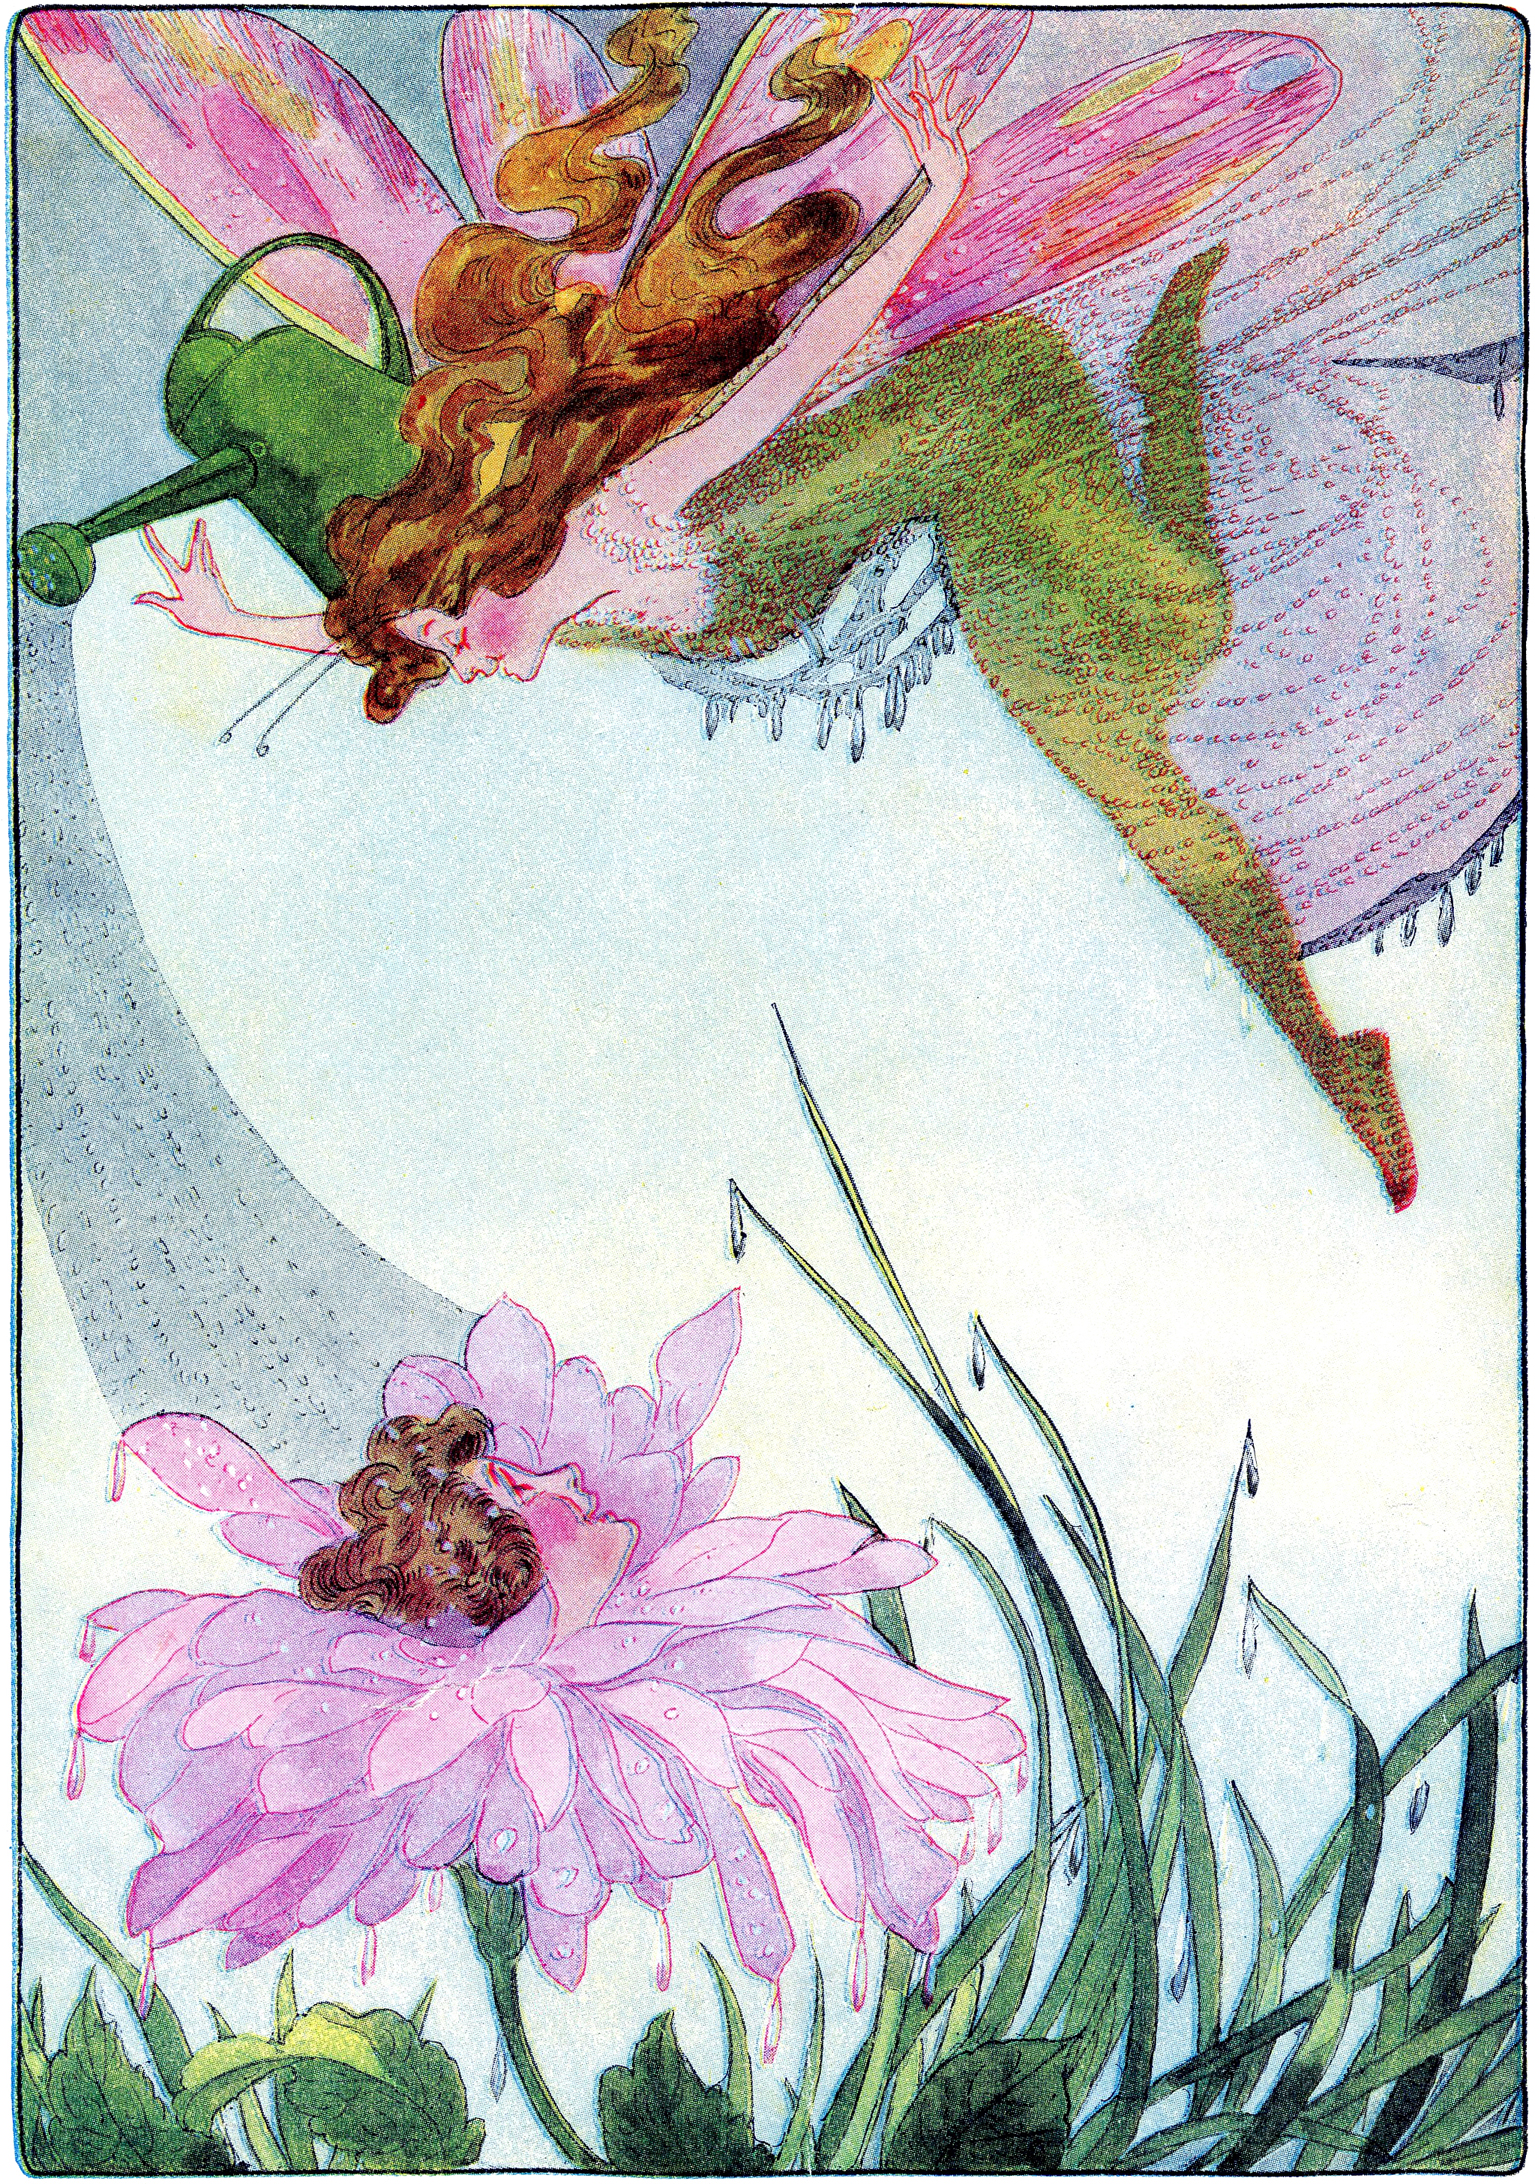 Vintage Garden Fairy Image The Graphics Fairy